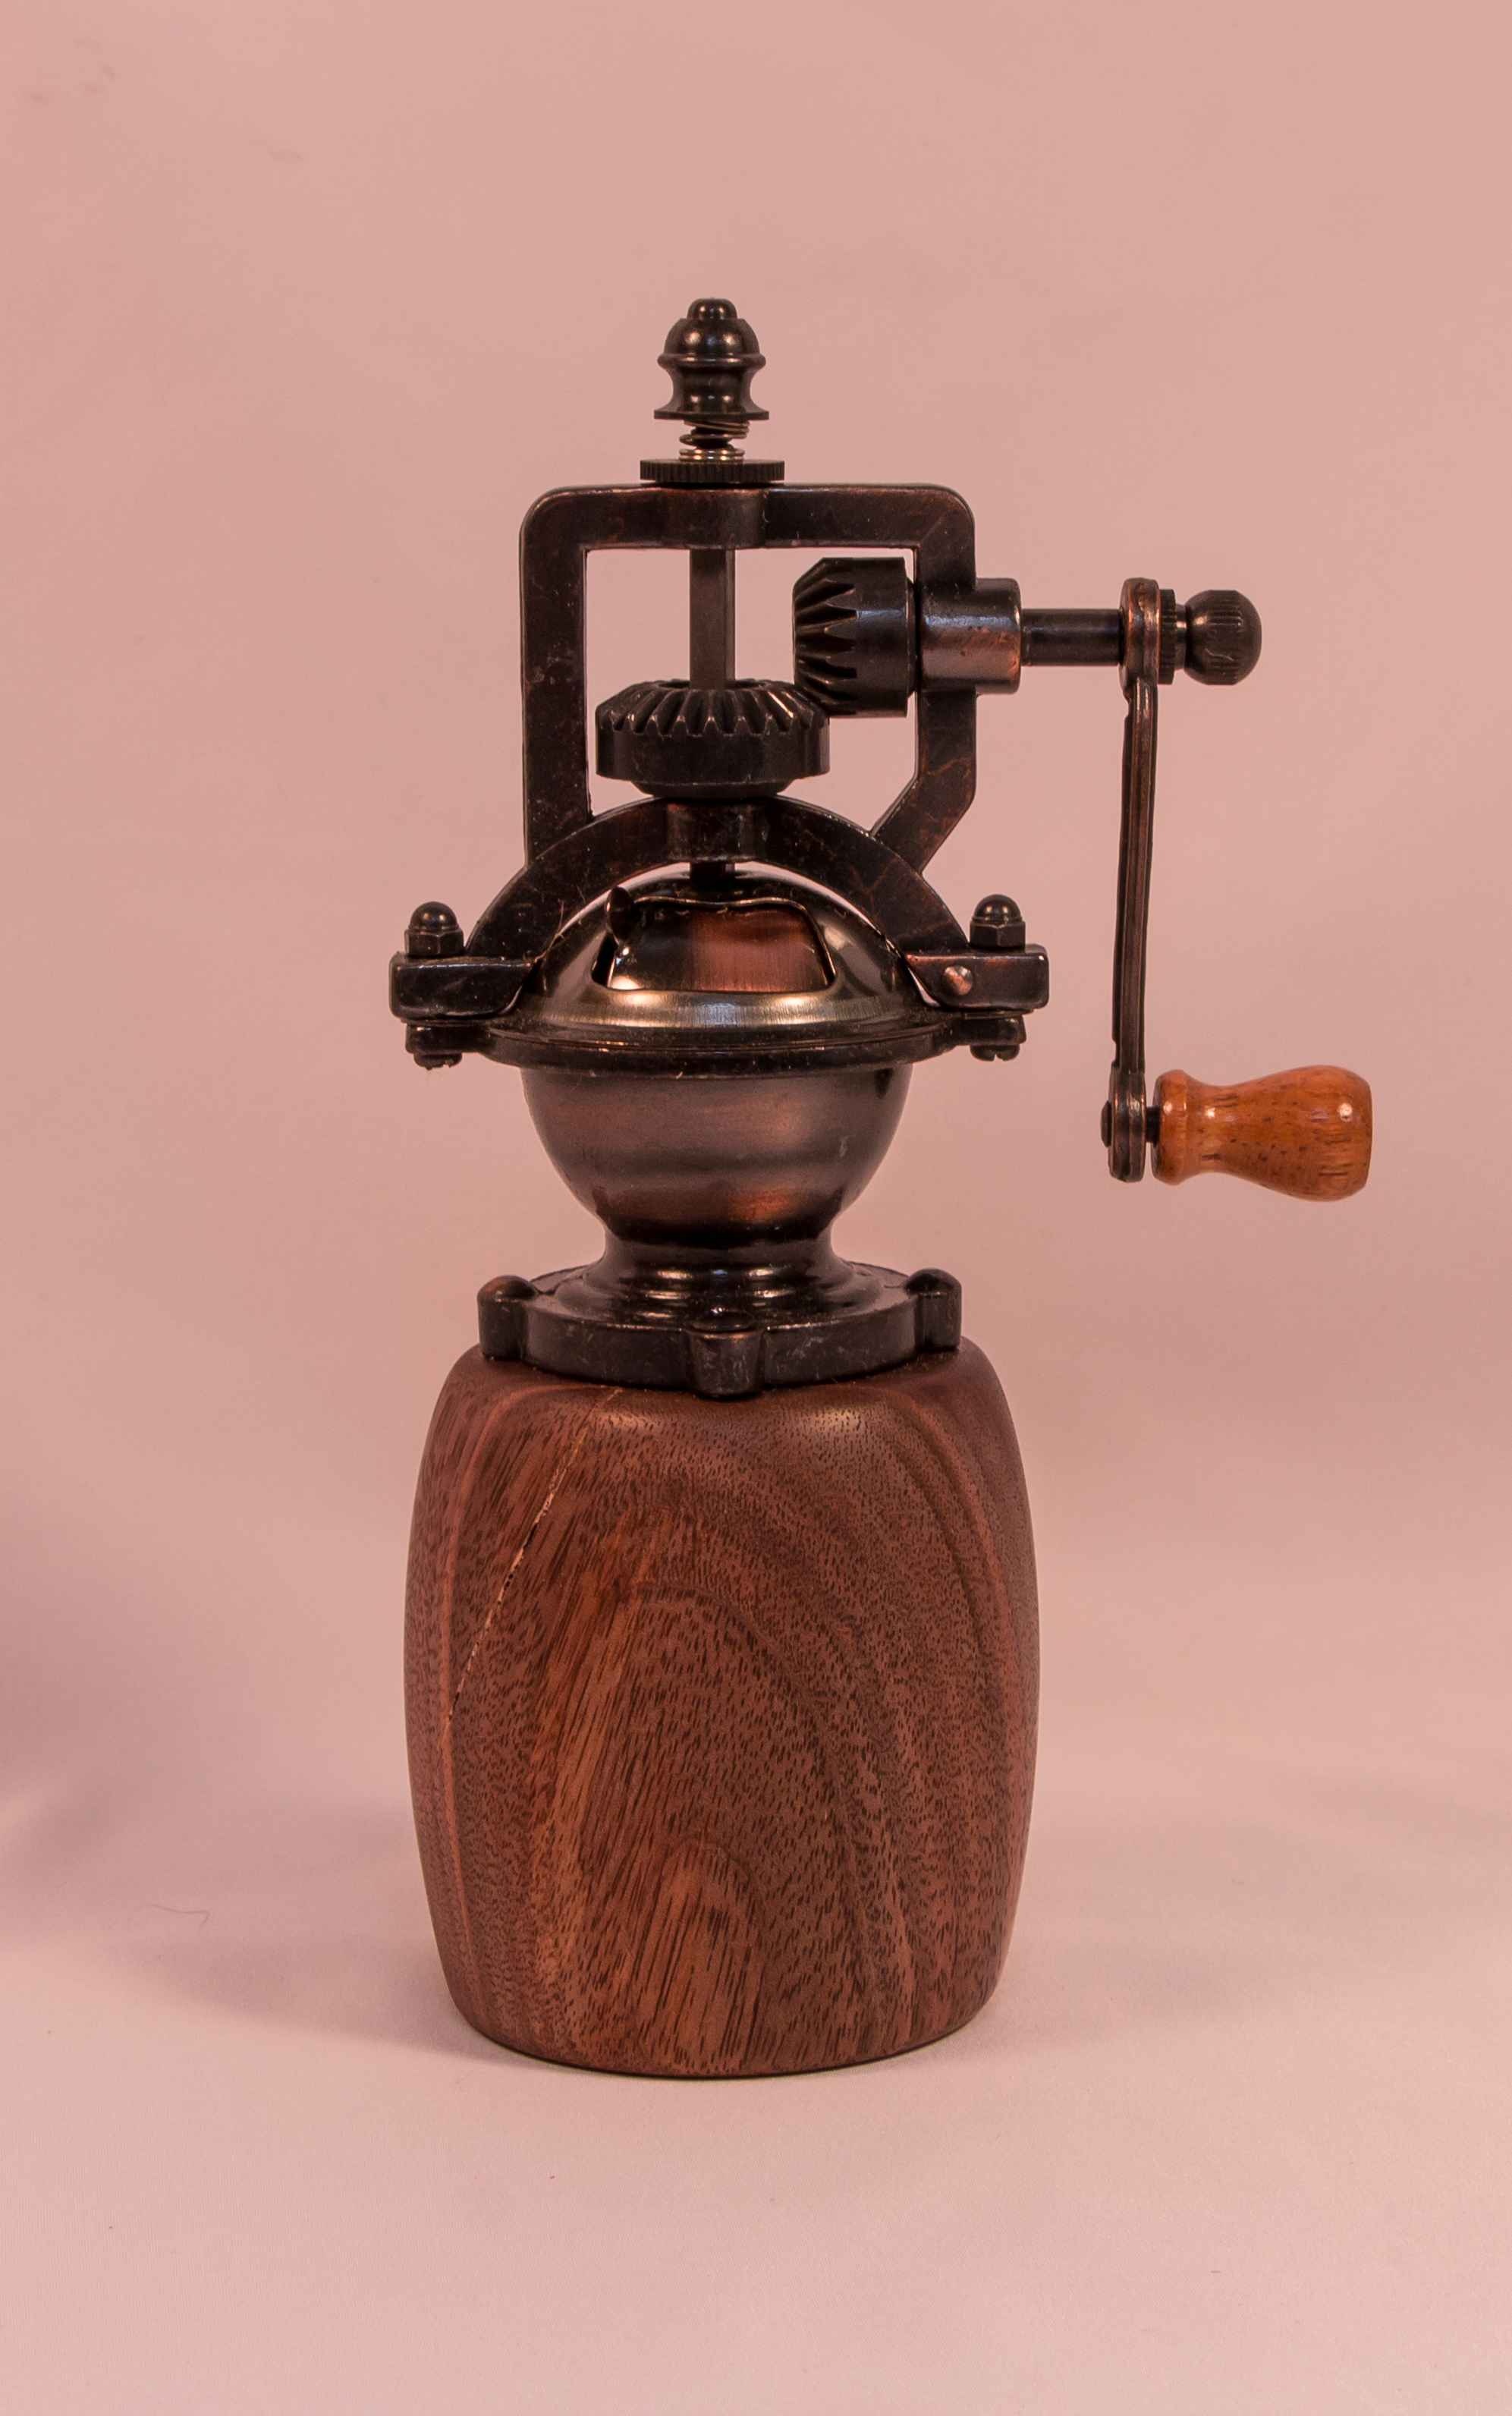 Small Antique Pepper Grinder